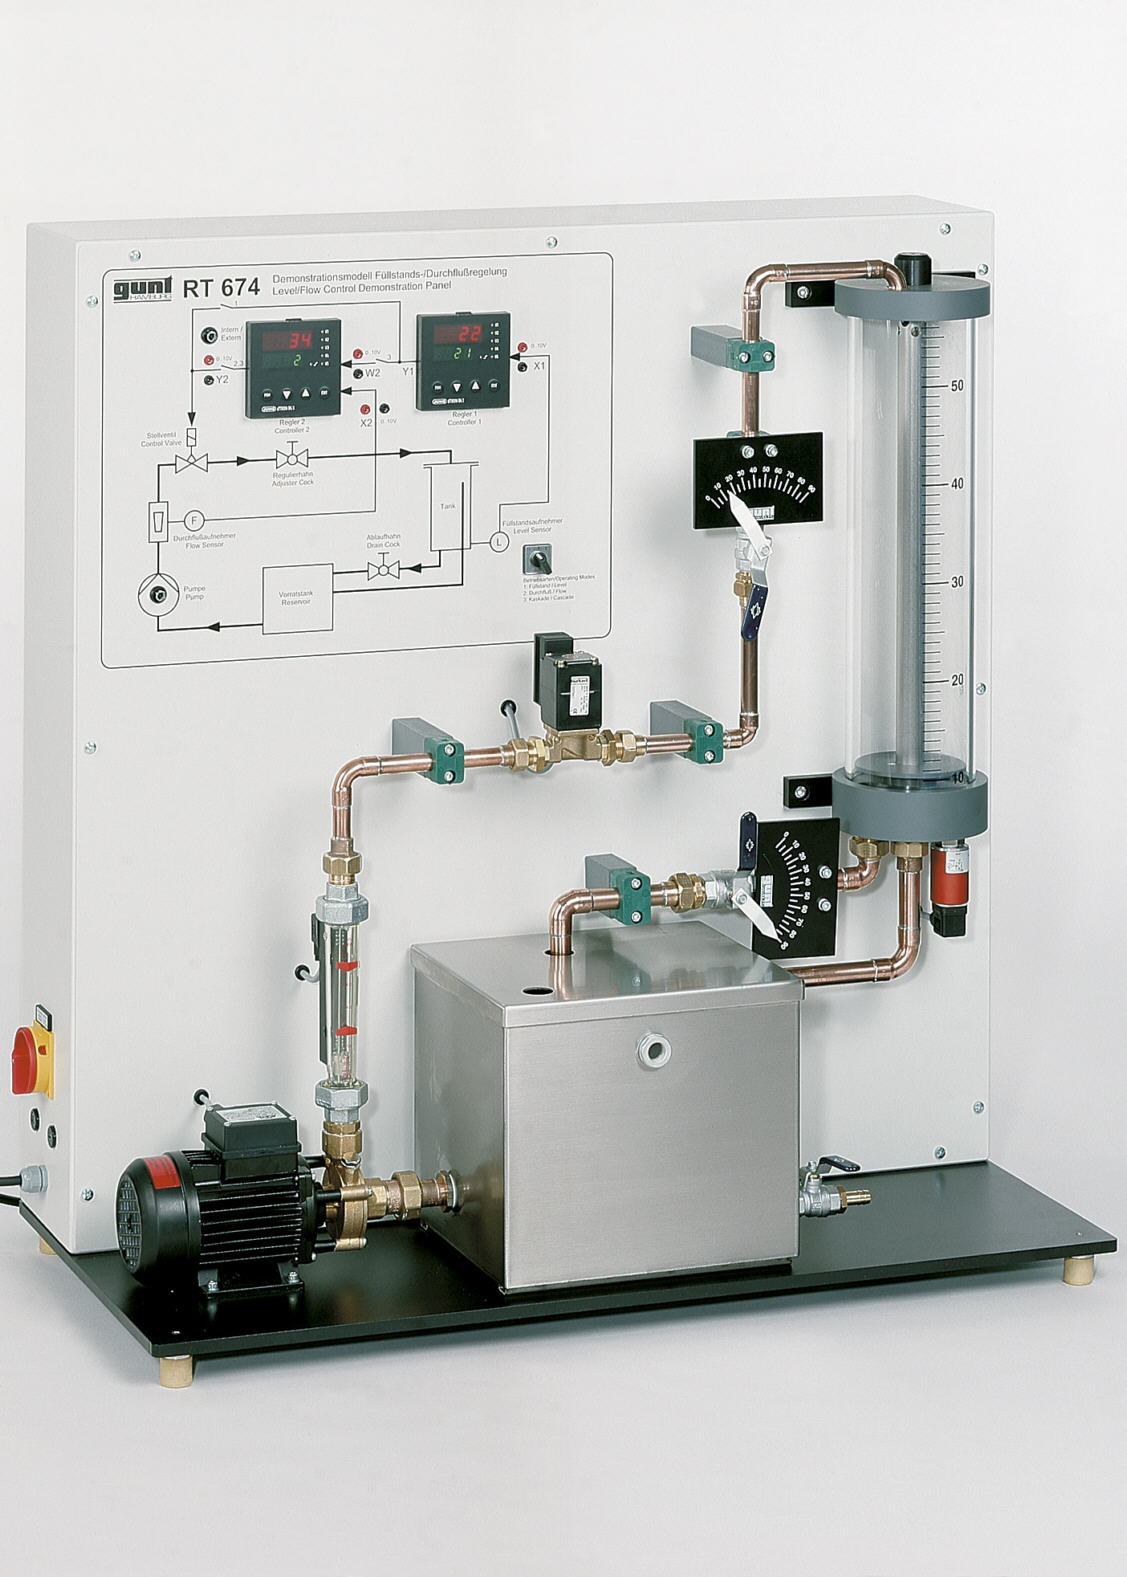 Flow / Level Control Demonstration Unit